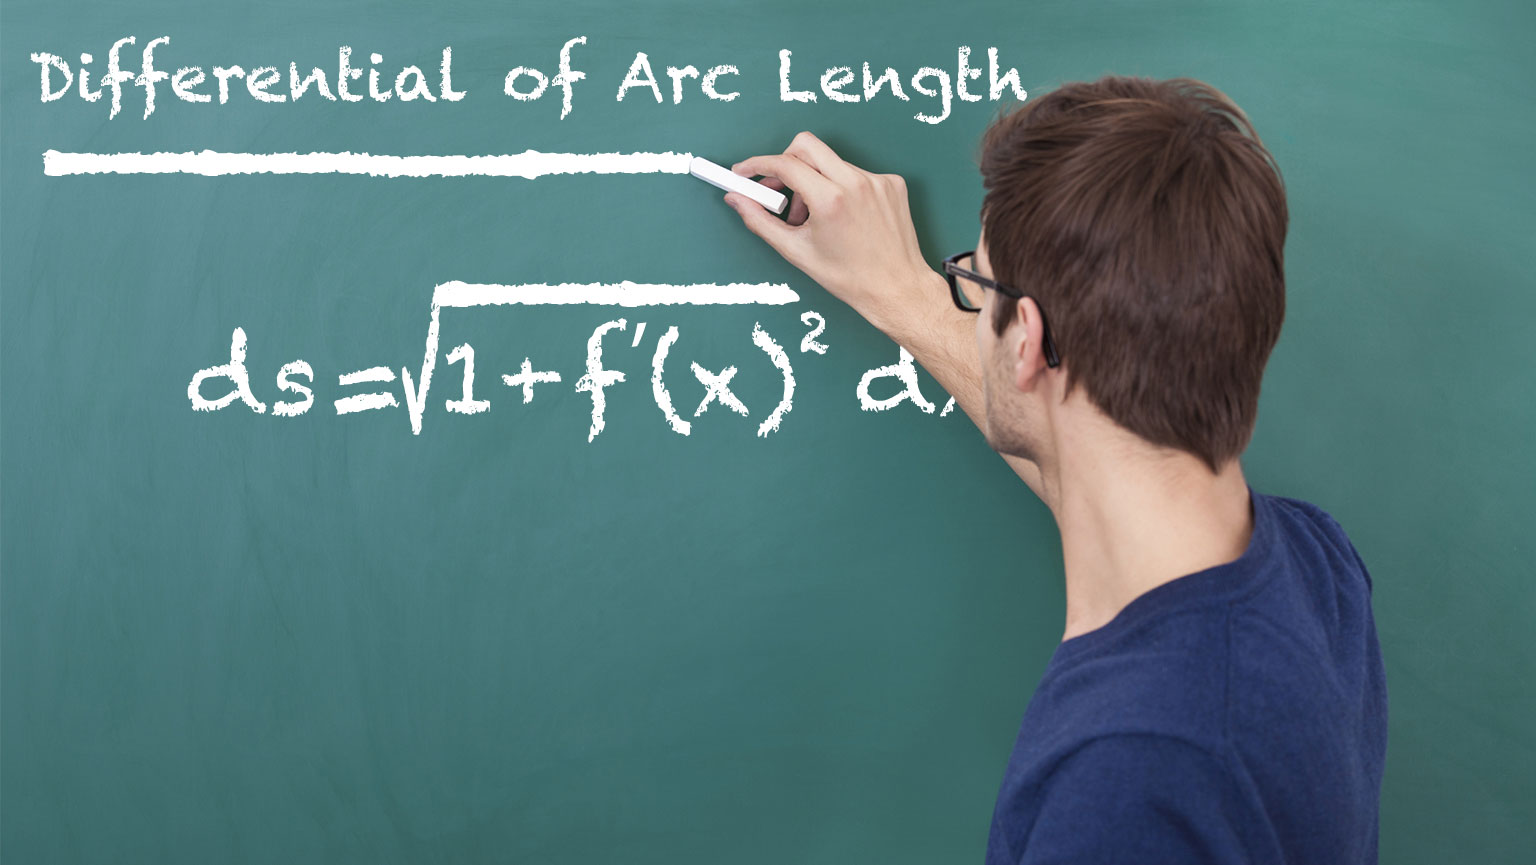 Applications—Arc Length and Surface Area